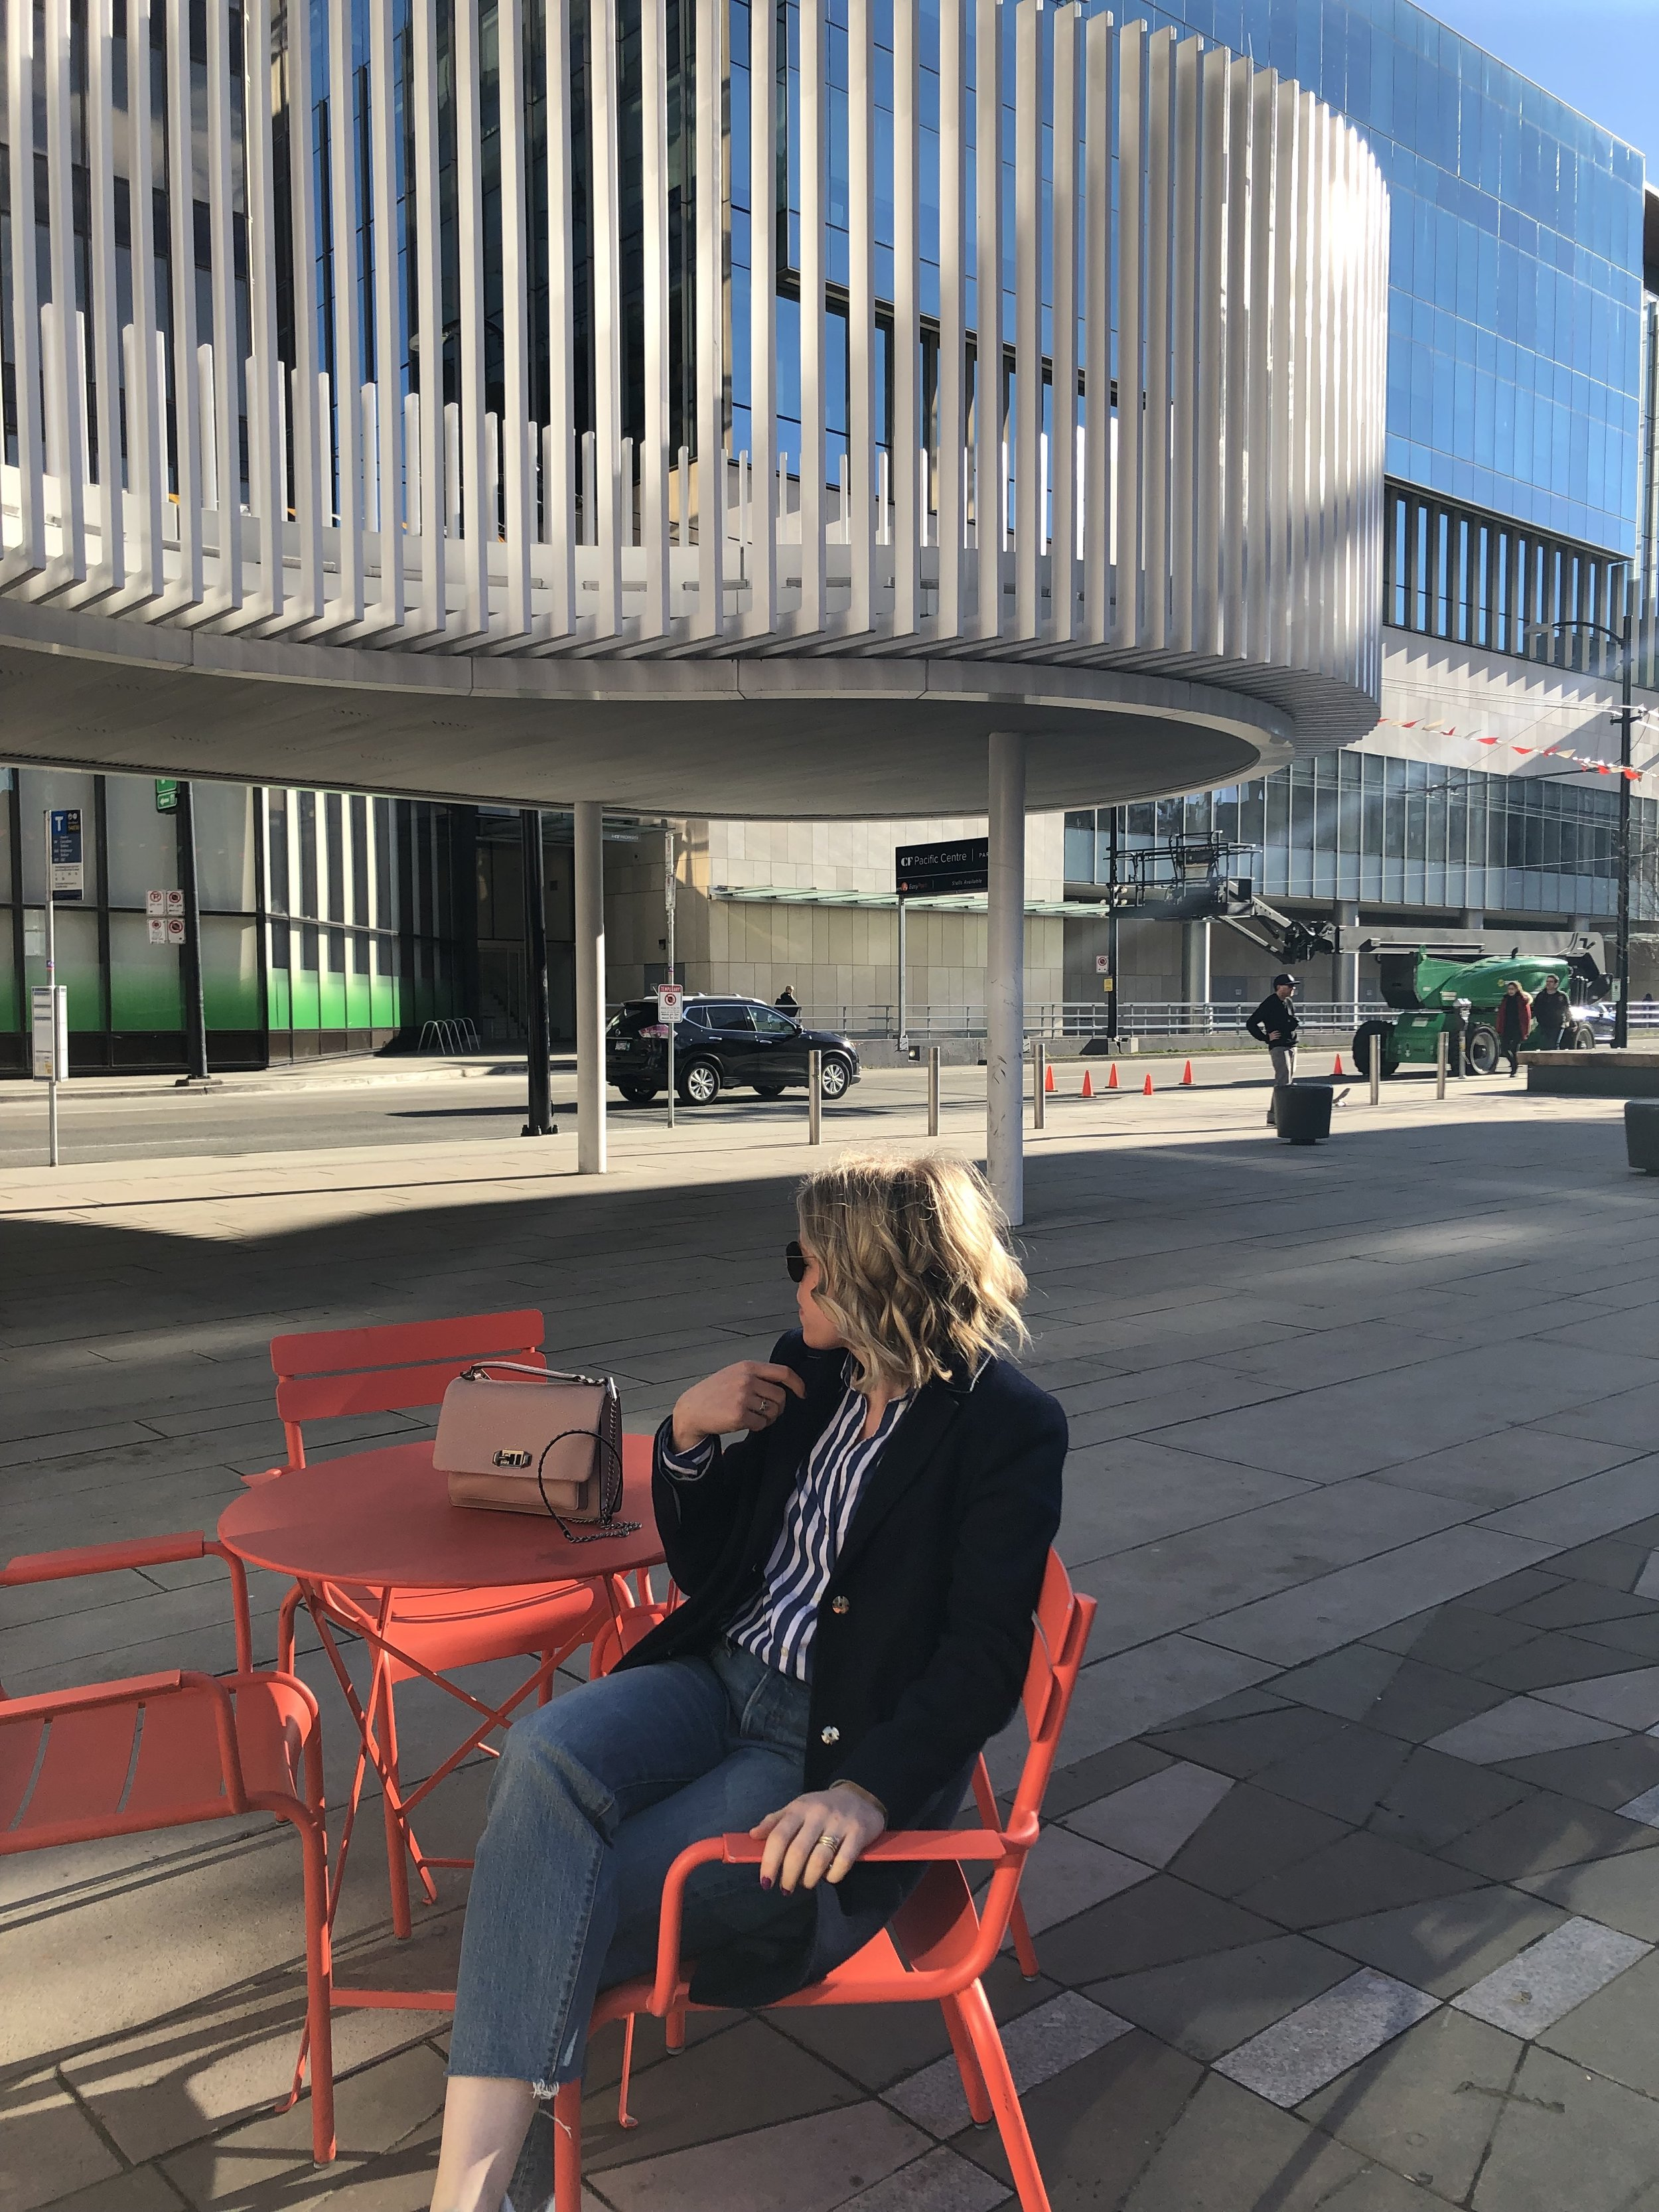 People watching, one of my favourite things to do in a city